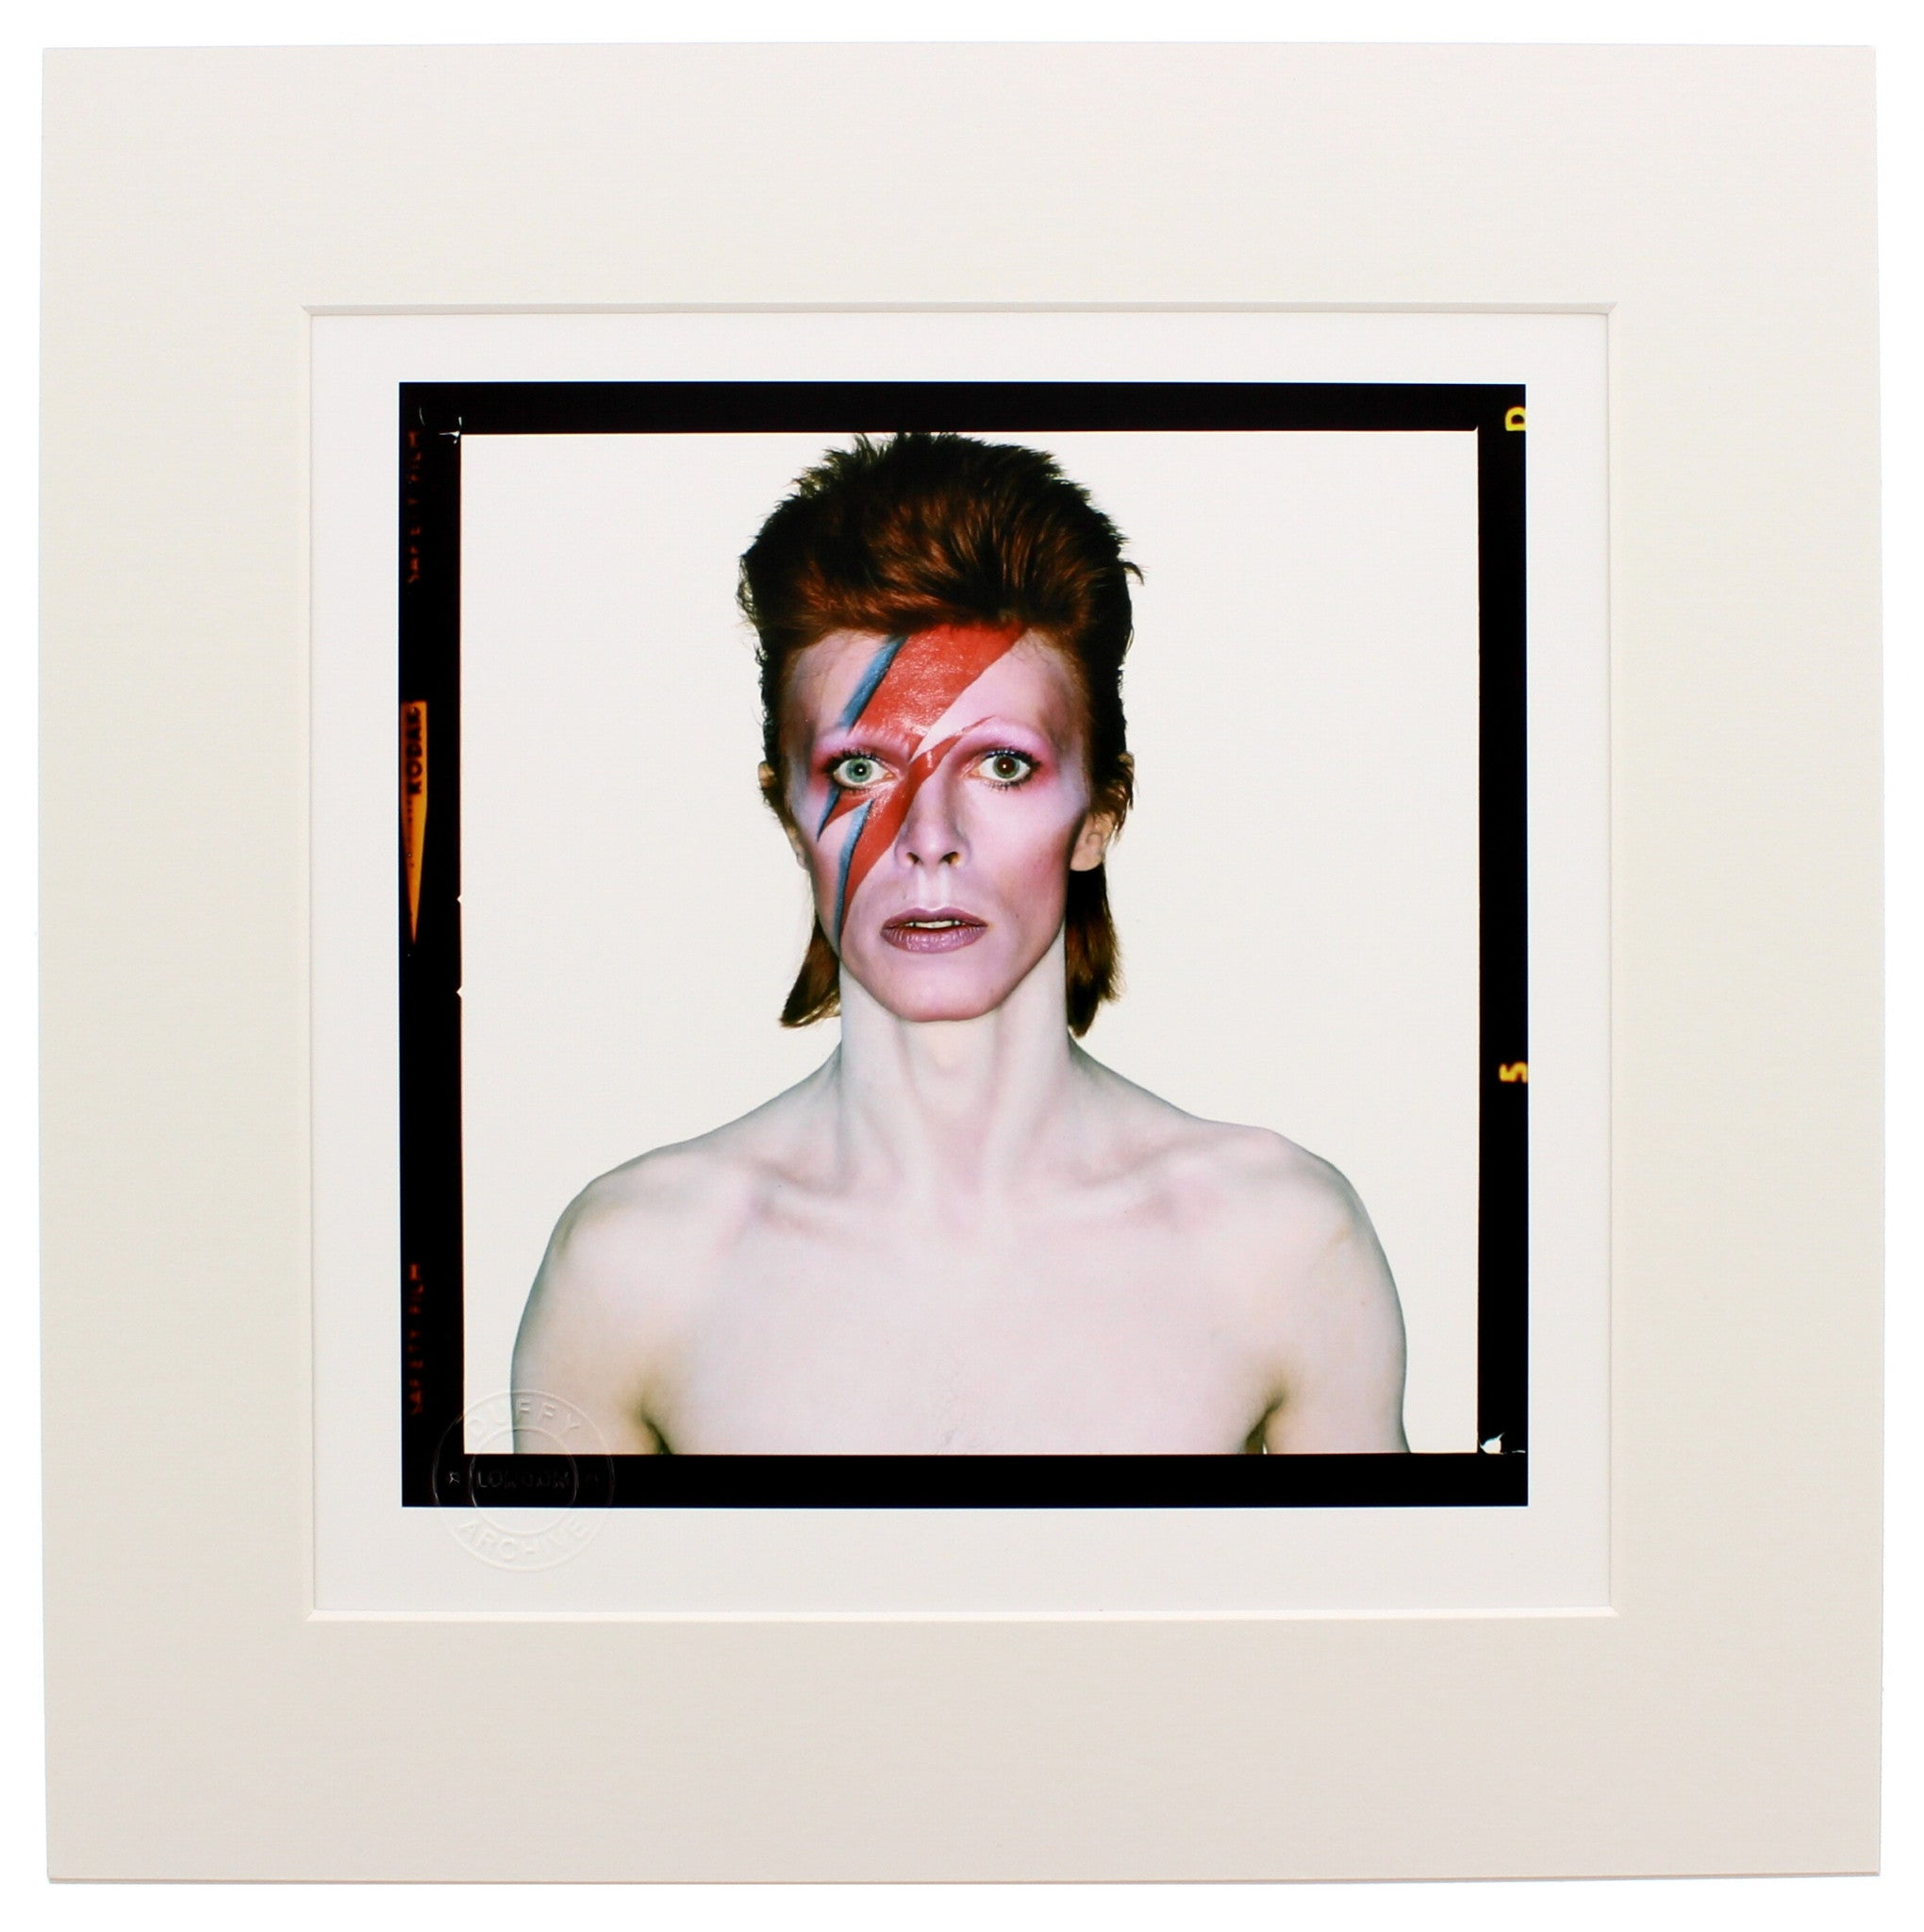 Aladdin Sane, 1973 'Eyes Open' Brian Duffy Archive Mounted Print